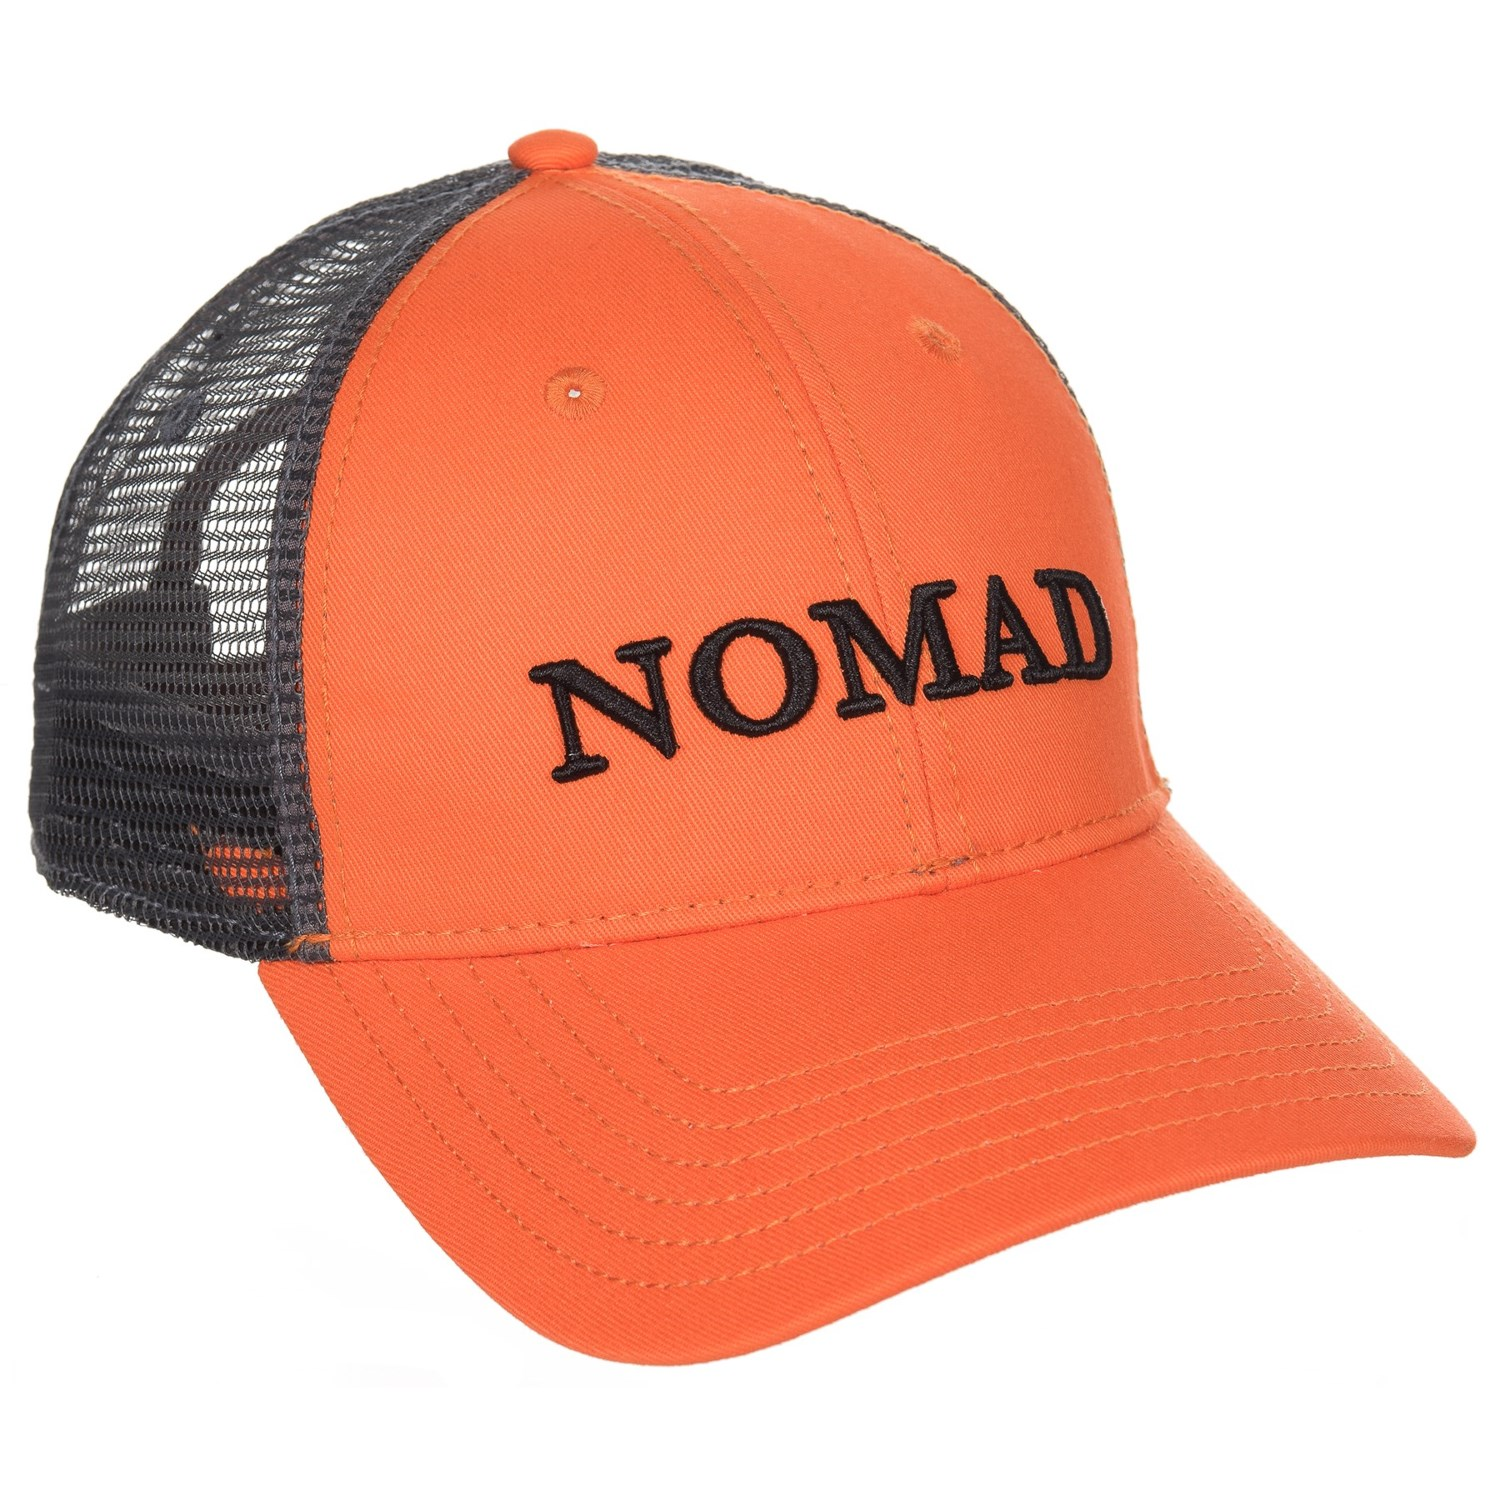 0eac296e0cbfa7 NOMAD Trucker Hat (For Men) in Blaze Orange. Tap to expand